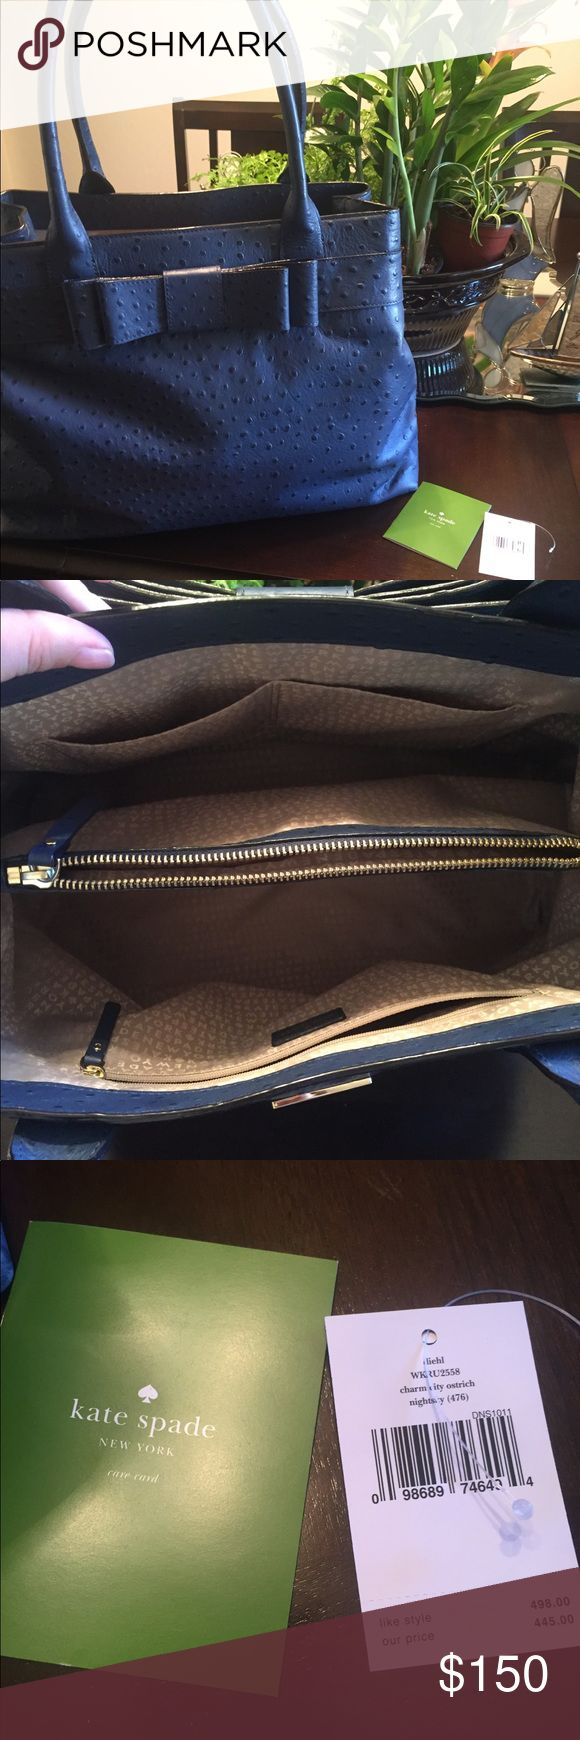 Beautiful Kate Spade ♠️ Shoulder bag Large Kate Spade Ostrich Diehl Purse/Shoulder – Ostrich color. Only wore 3 times No signs of wear very beautiful and spacious enough to fit your laptop! Price is negotiable only through the offer option. kate spade Bags Shoulder Bags